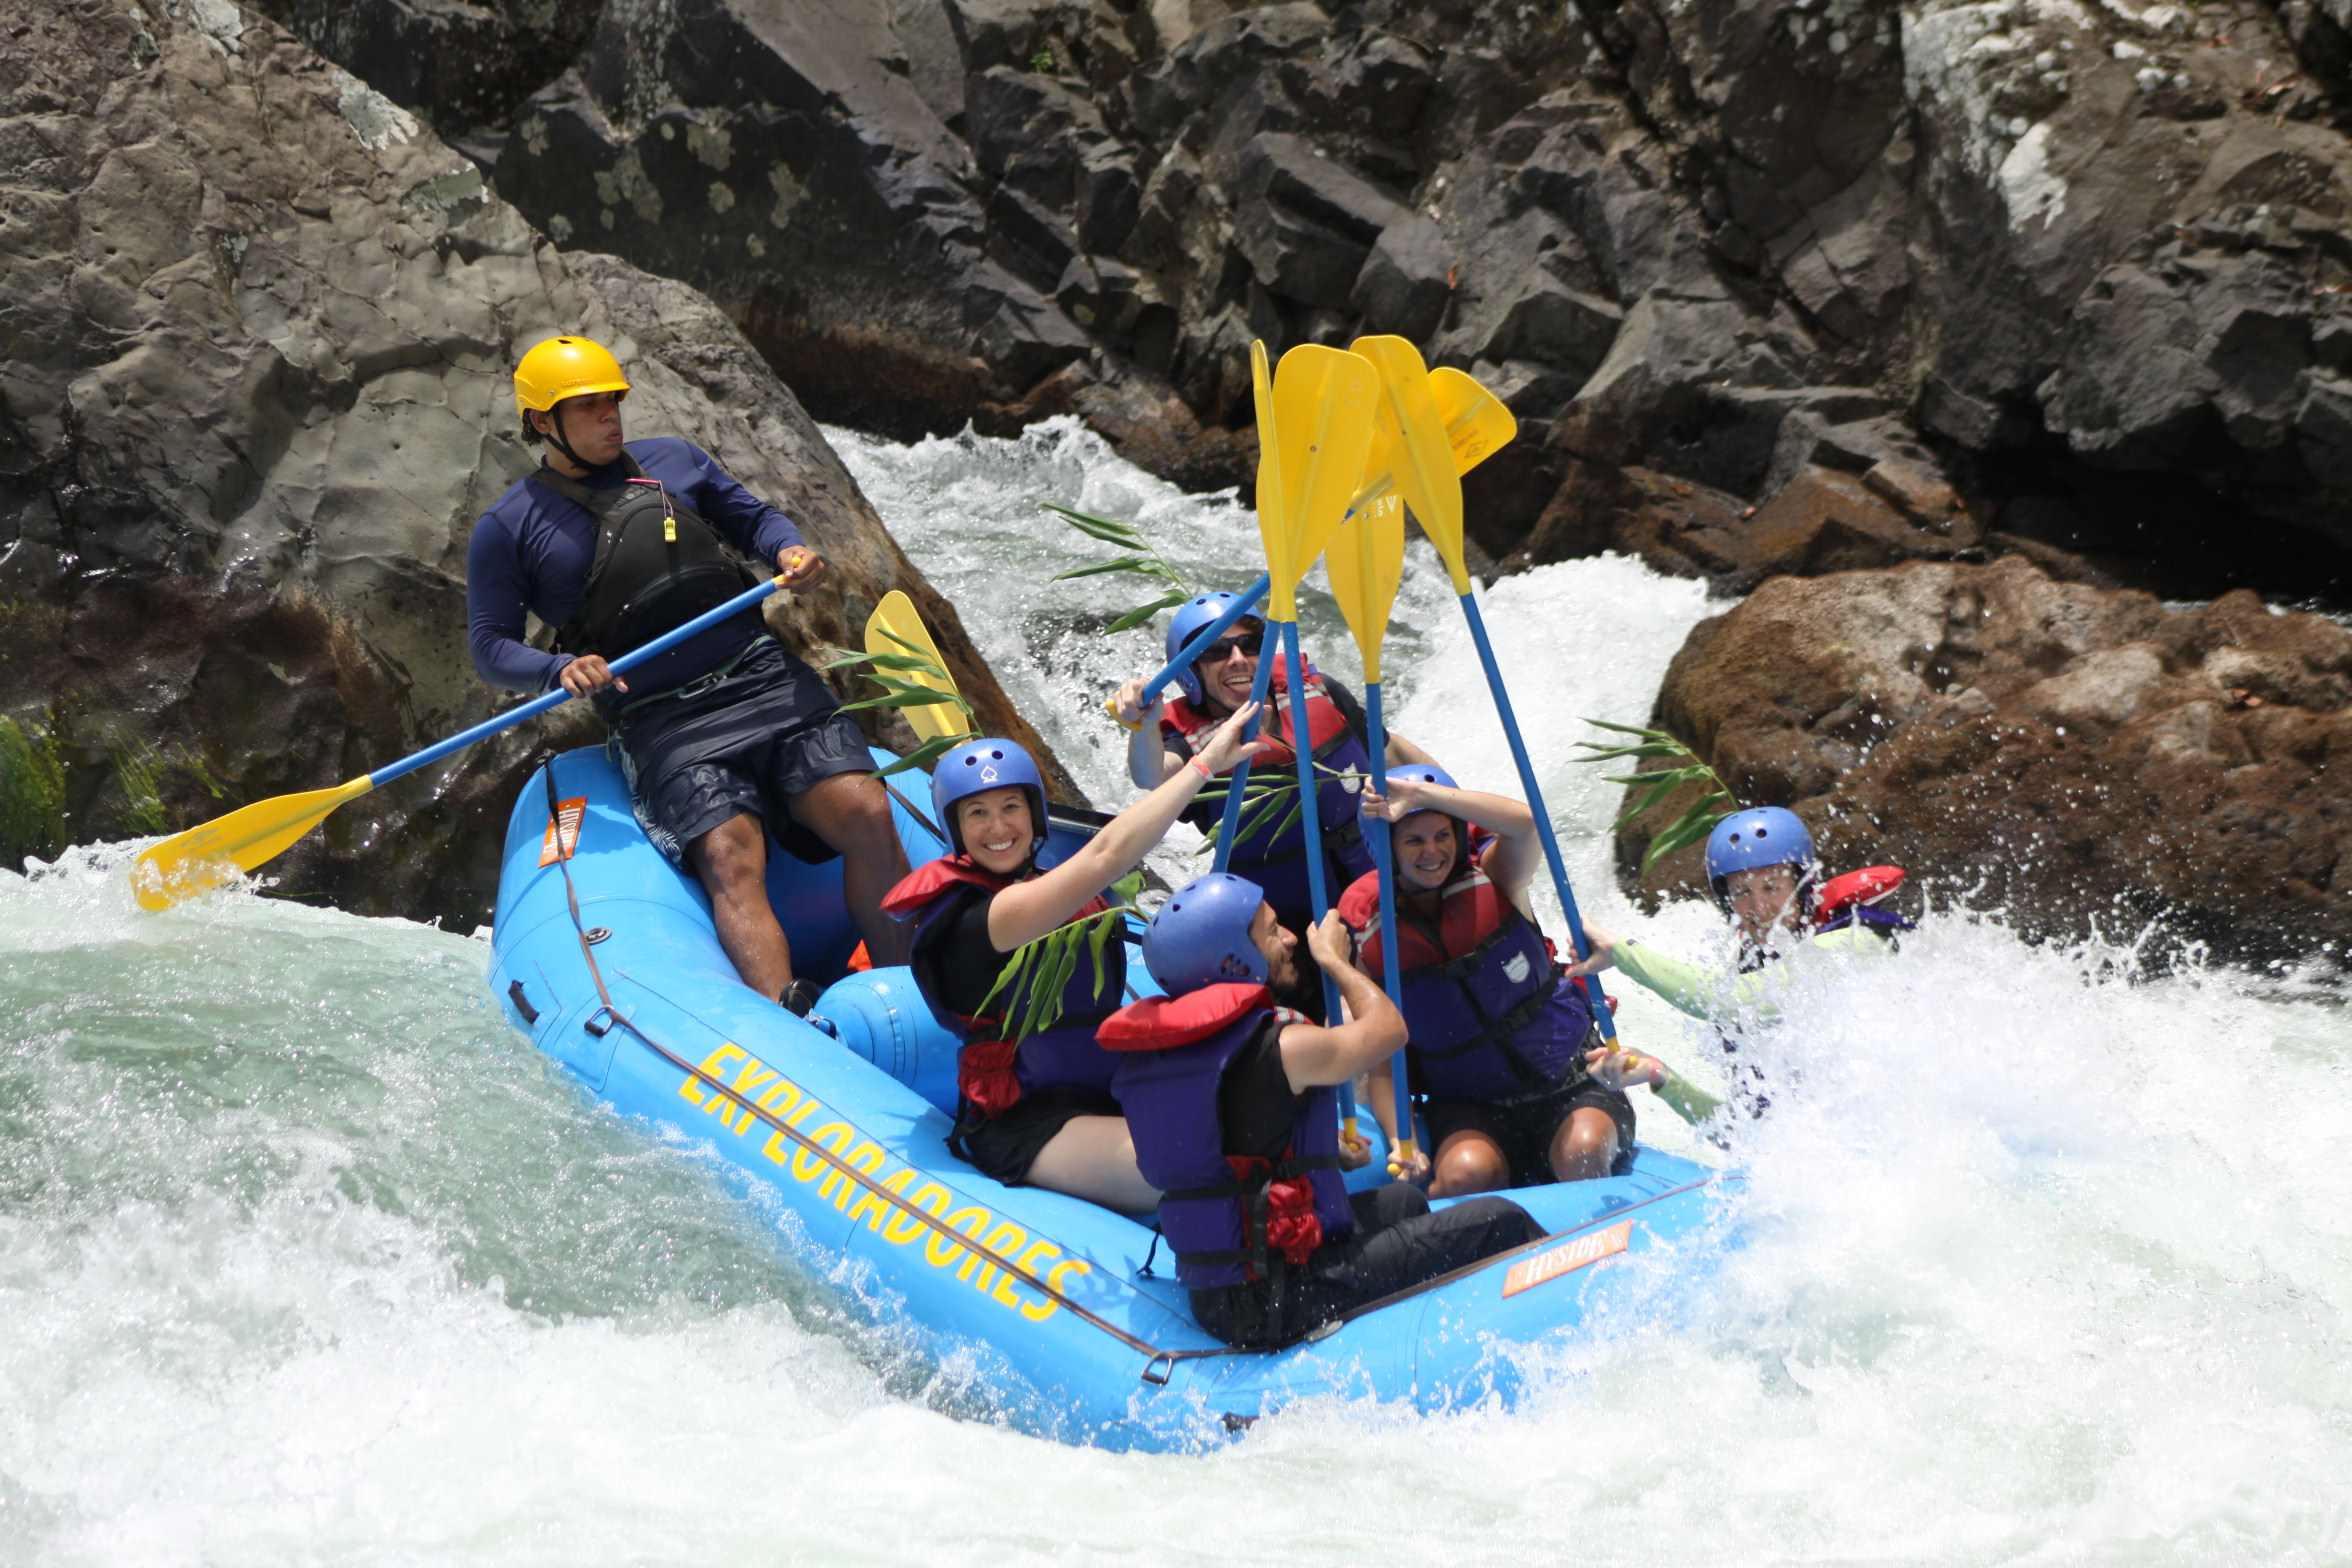 PKG-5-2-4DAY3NIGHT-BALI-WHITE-WATER-RAFTING-BEDUGUL-MARINE-TEMPLE-SUNSET-TOUR-PACKAGE